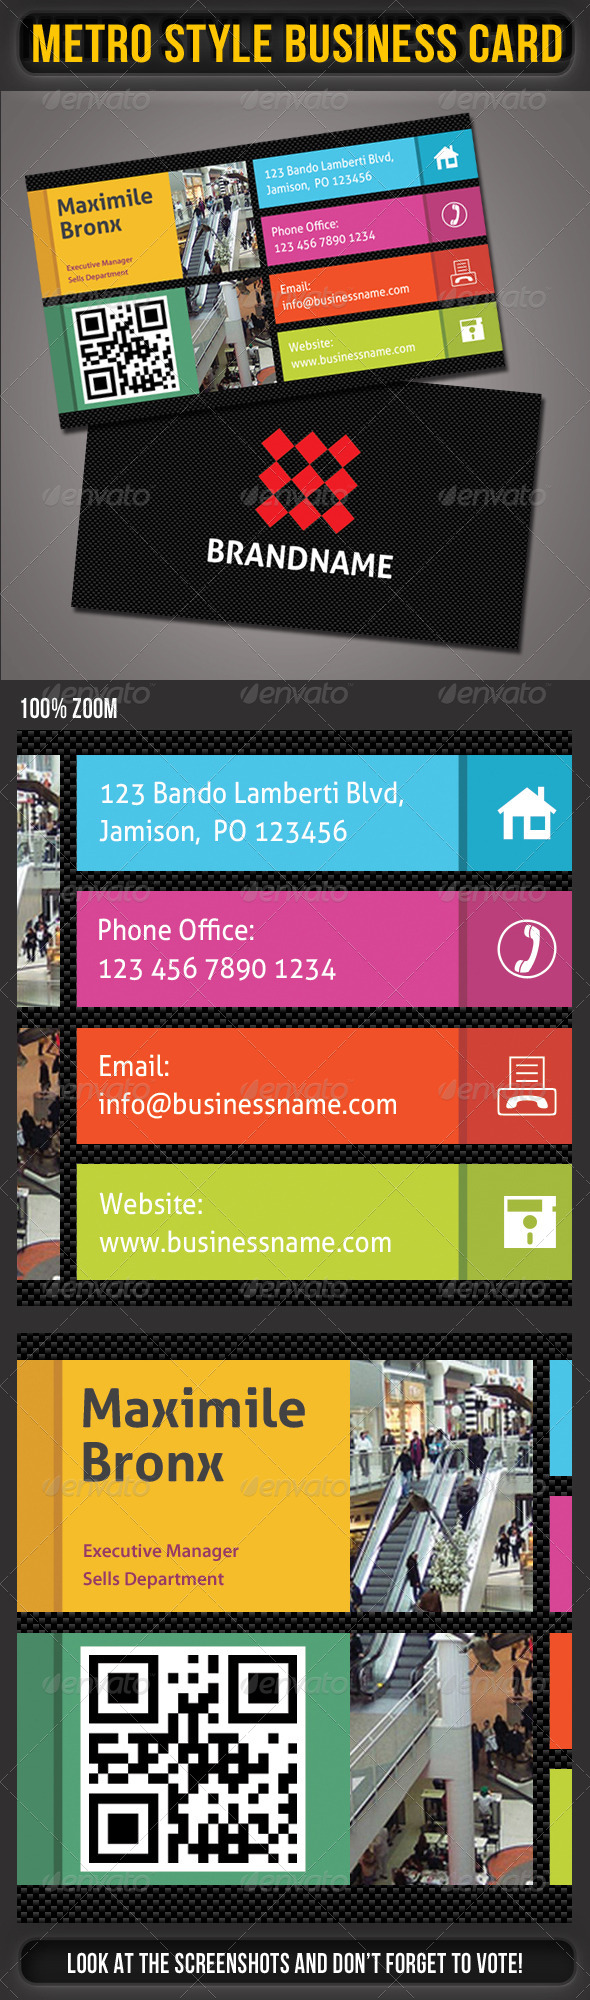 Metro Business Card 01 - Corporate Business Cards